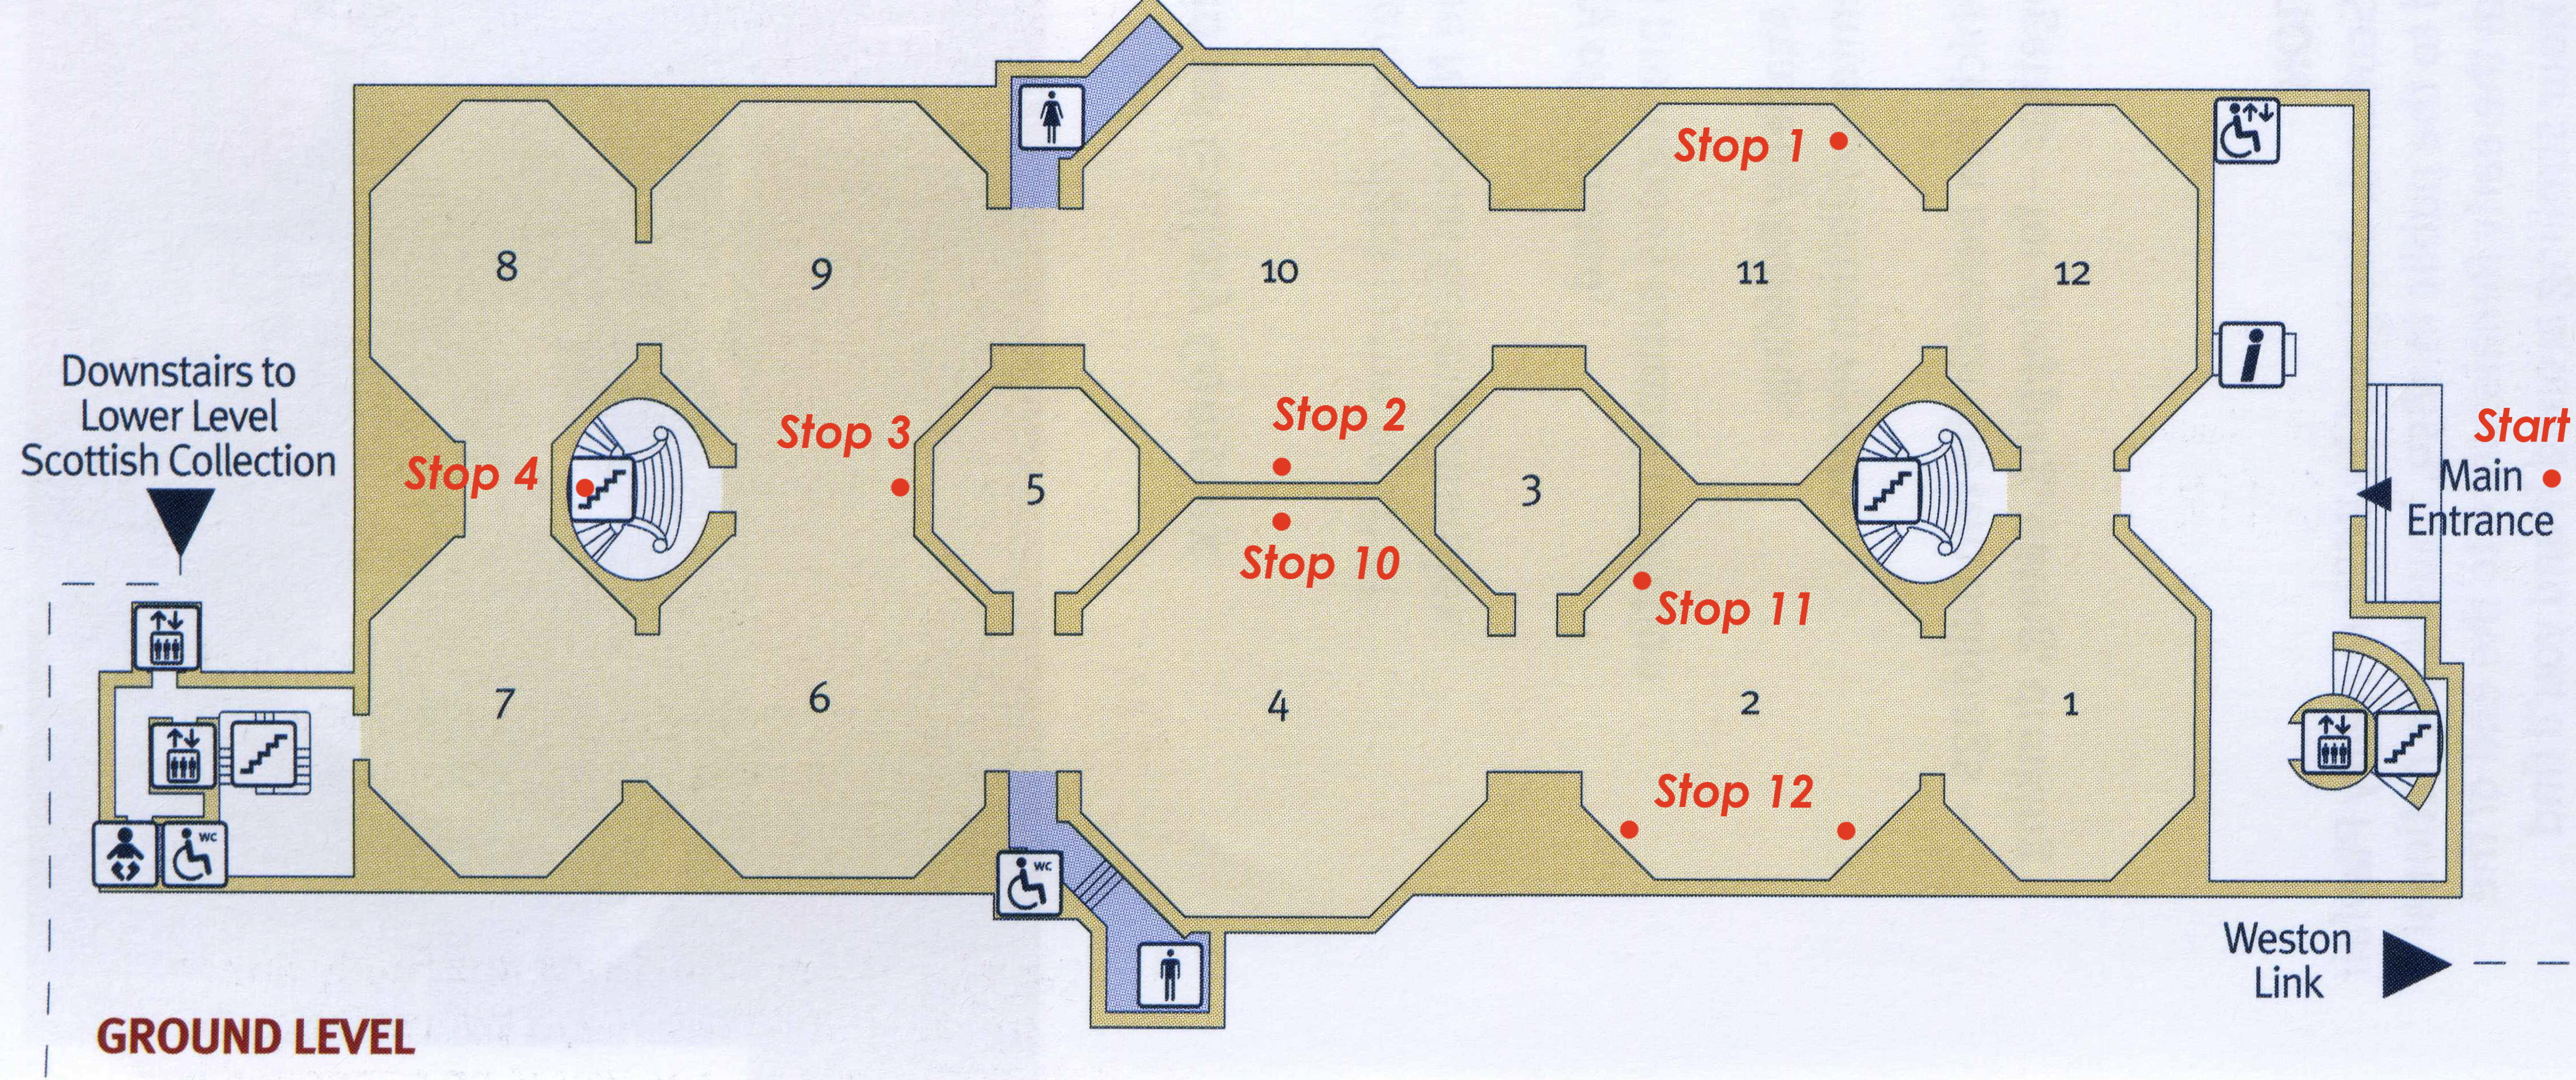 Ground floor plan with tour stopping points